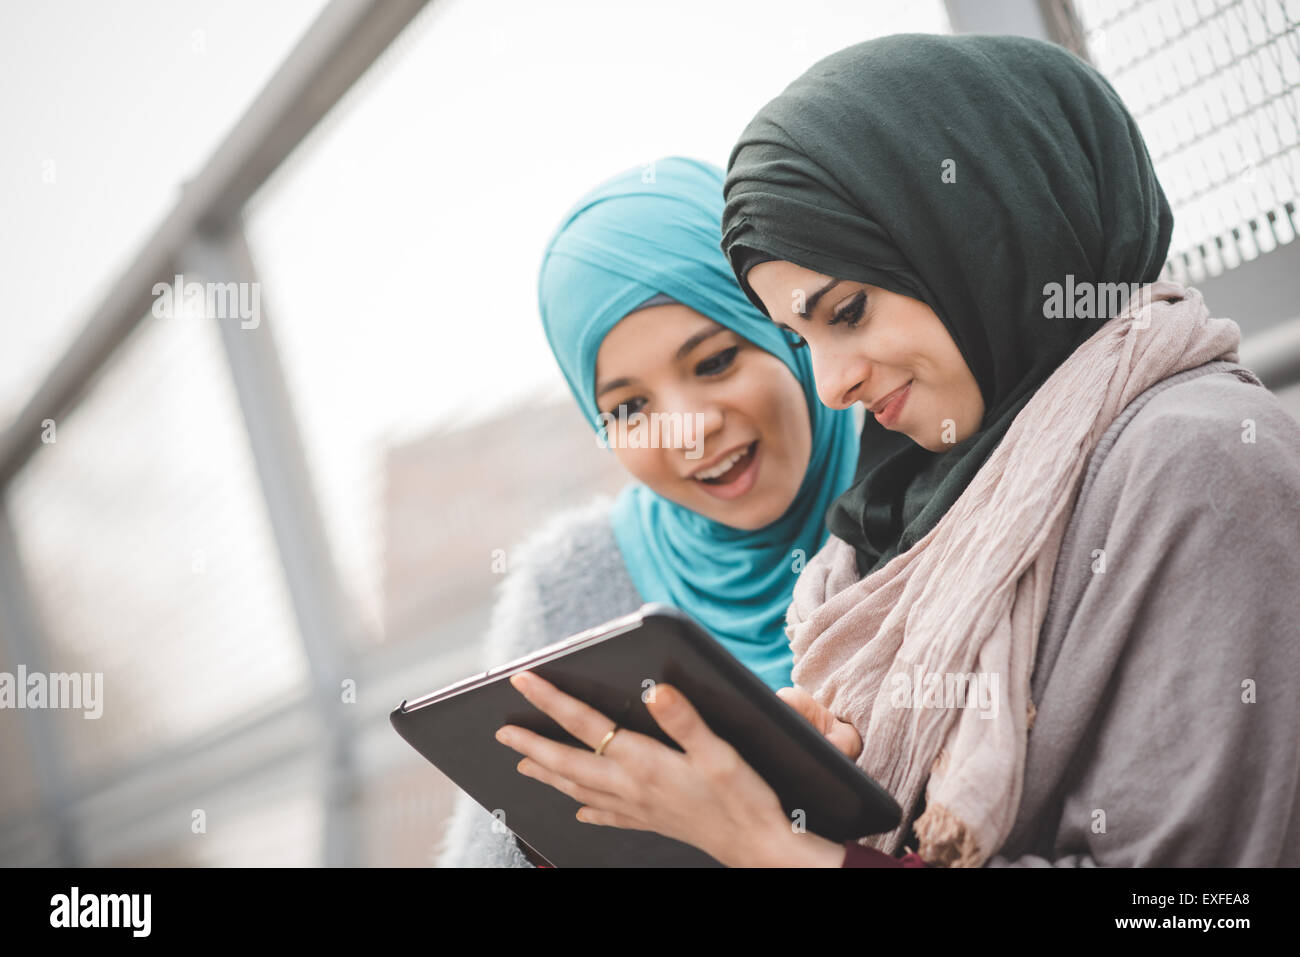 Two young women wearing hijabs using digital tablet on footbridge - Stock Image